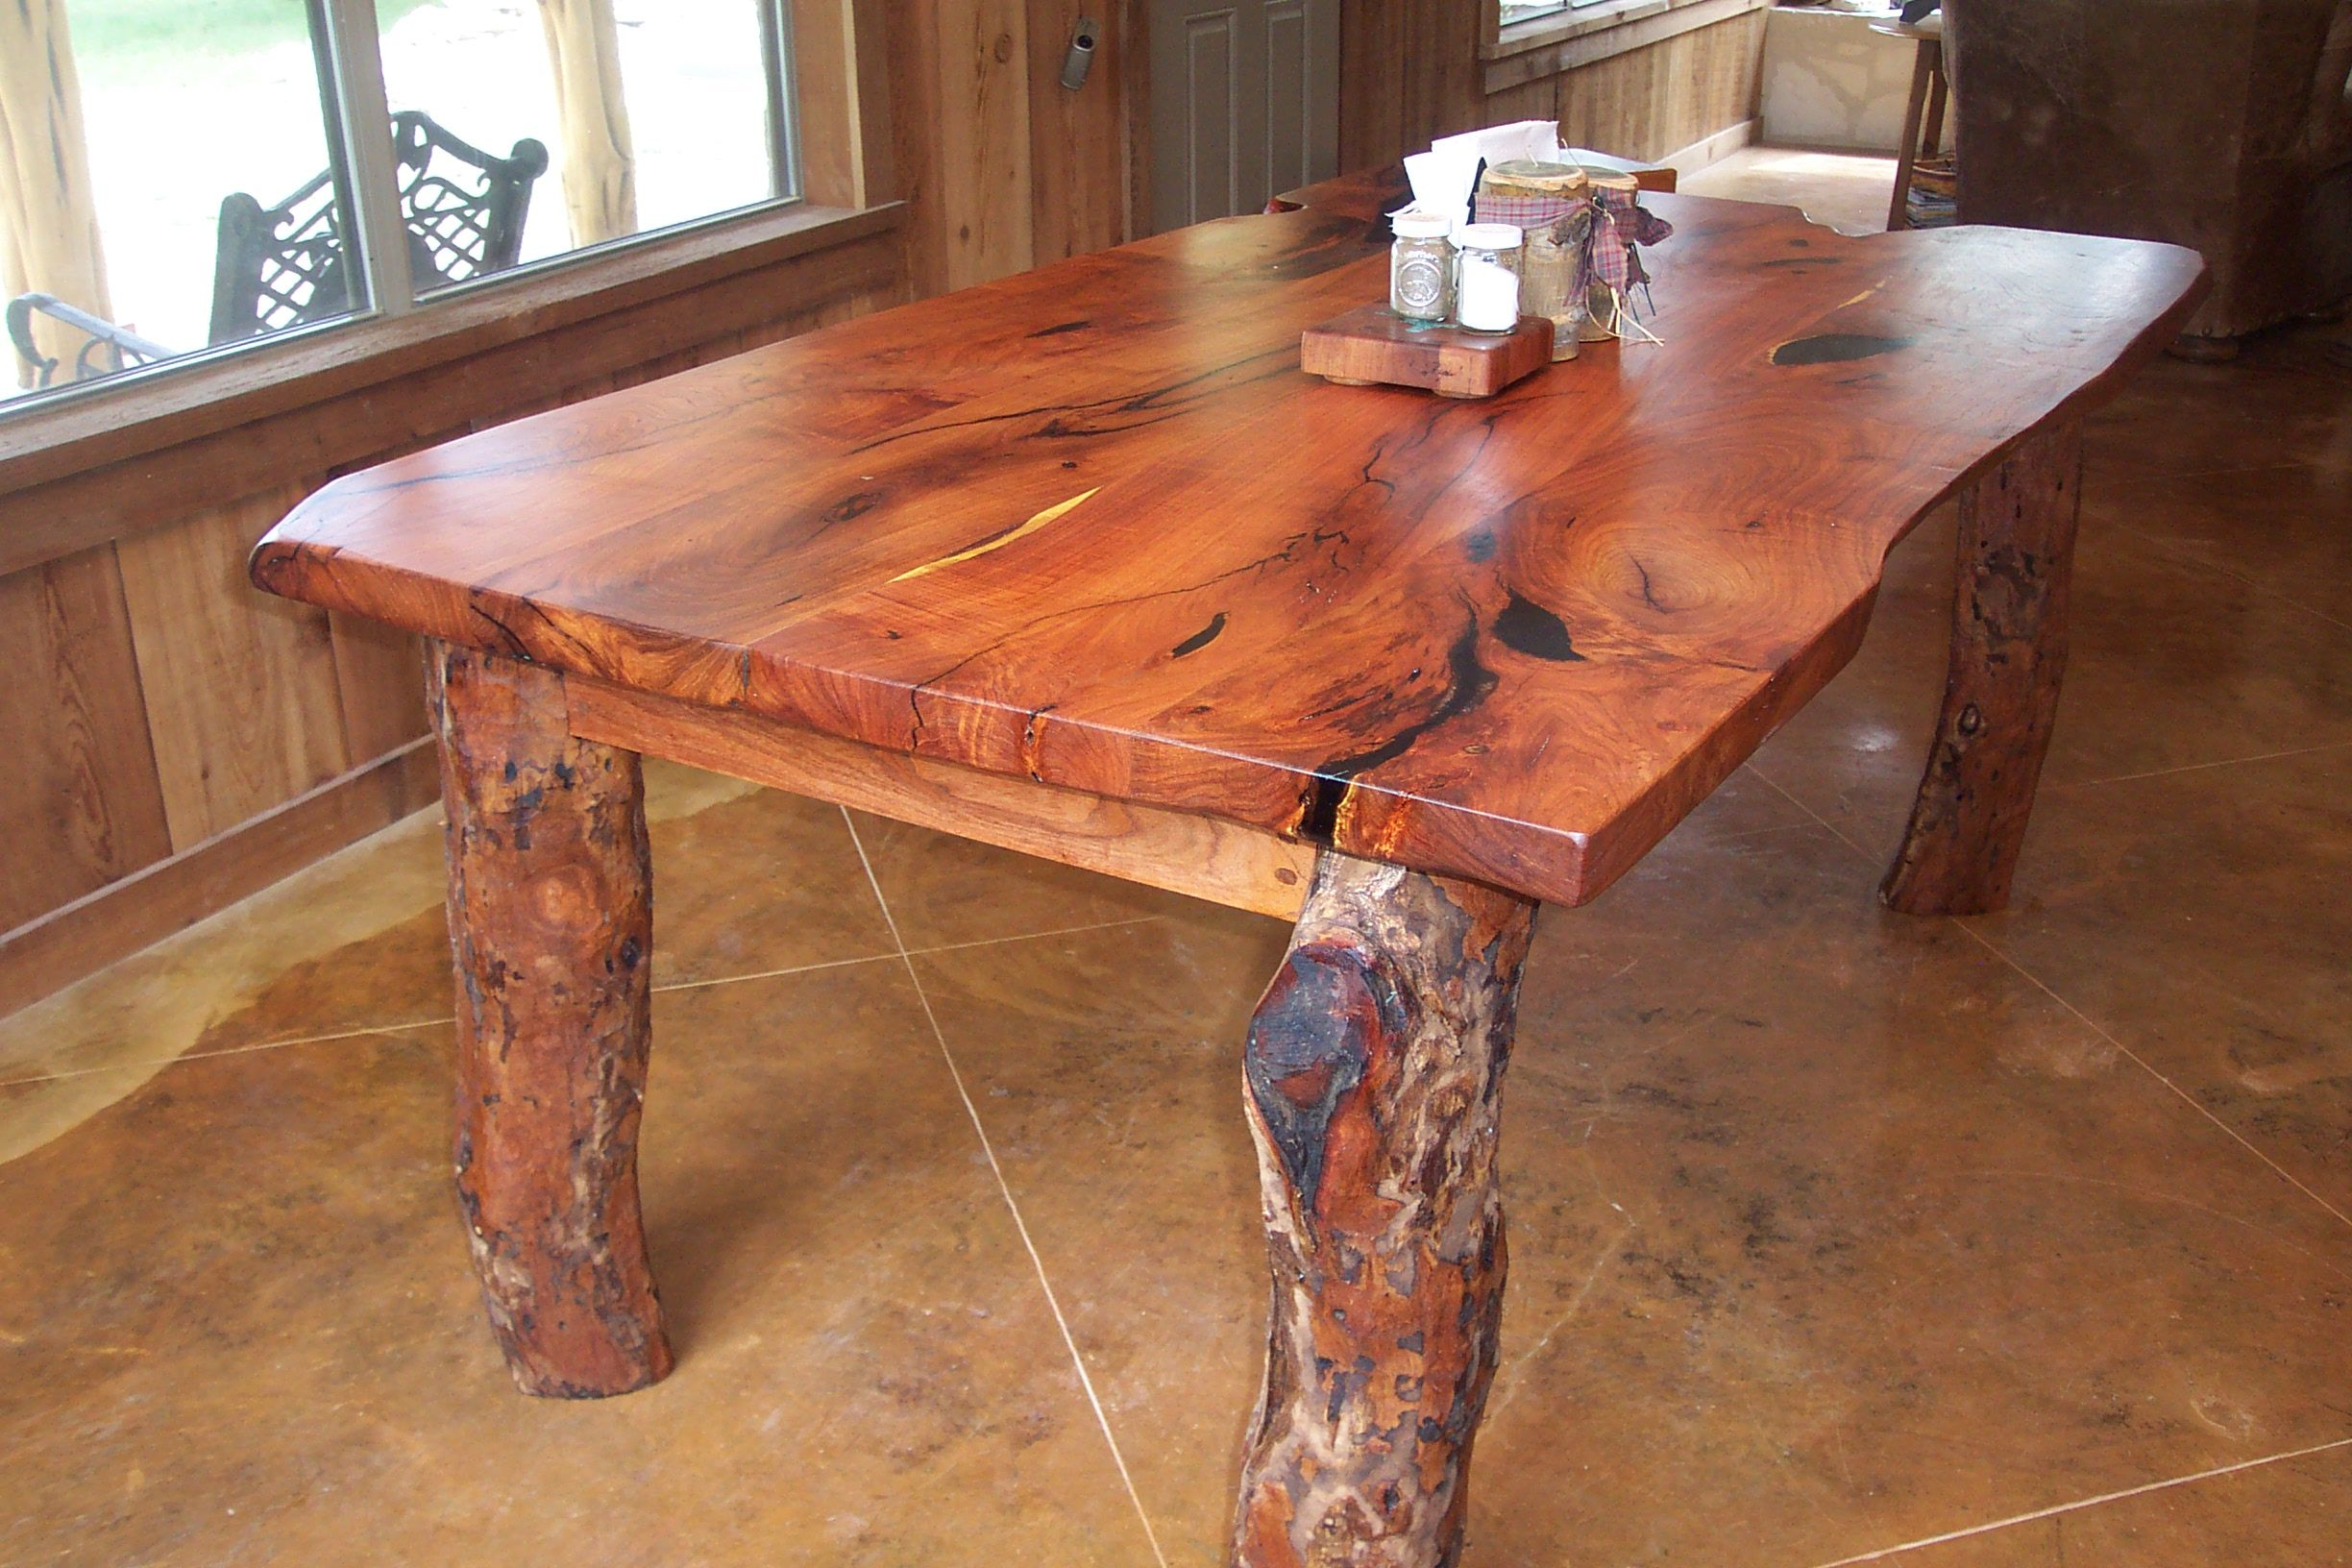 Great Texas Mesquite Table With Small Mesquite Logs As Table Legs.